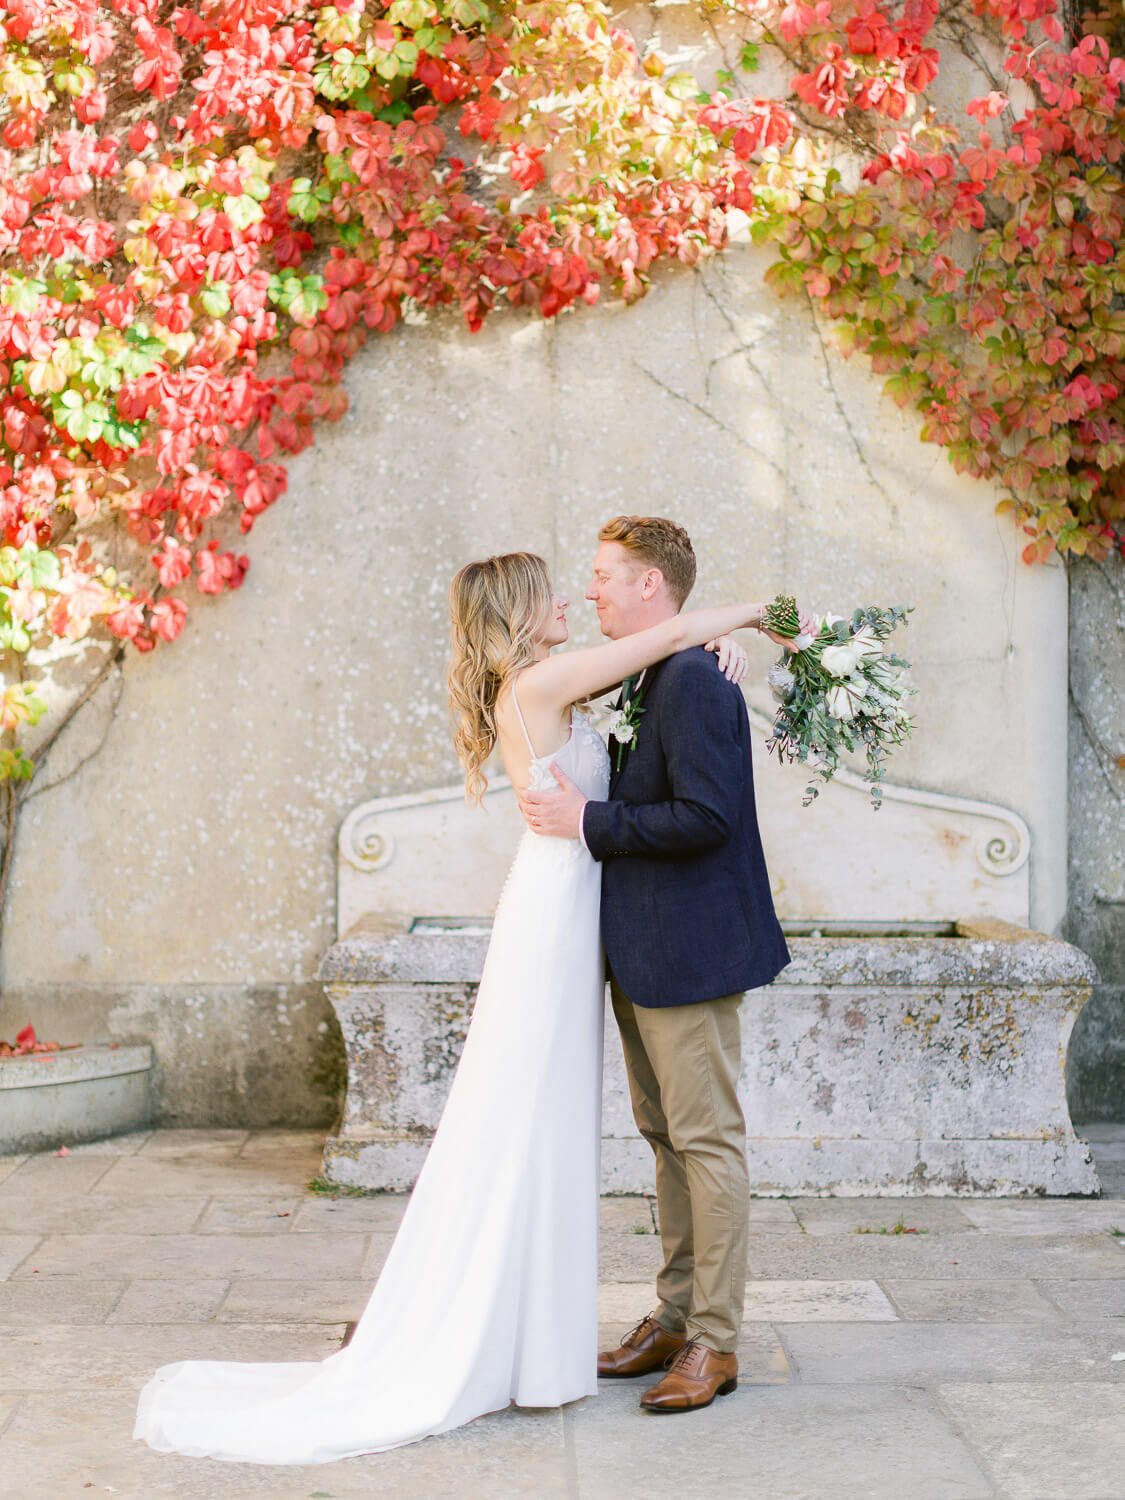 newlyweds sweet embrace after wedding by Portugal Wedding Photographer